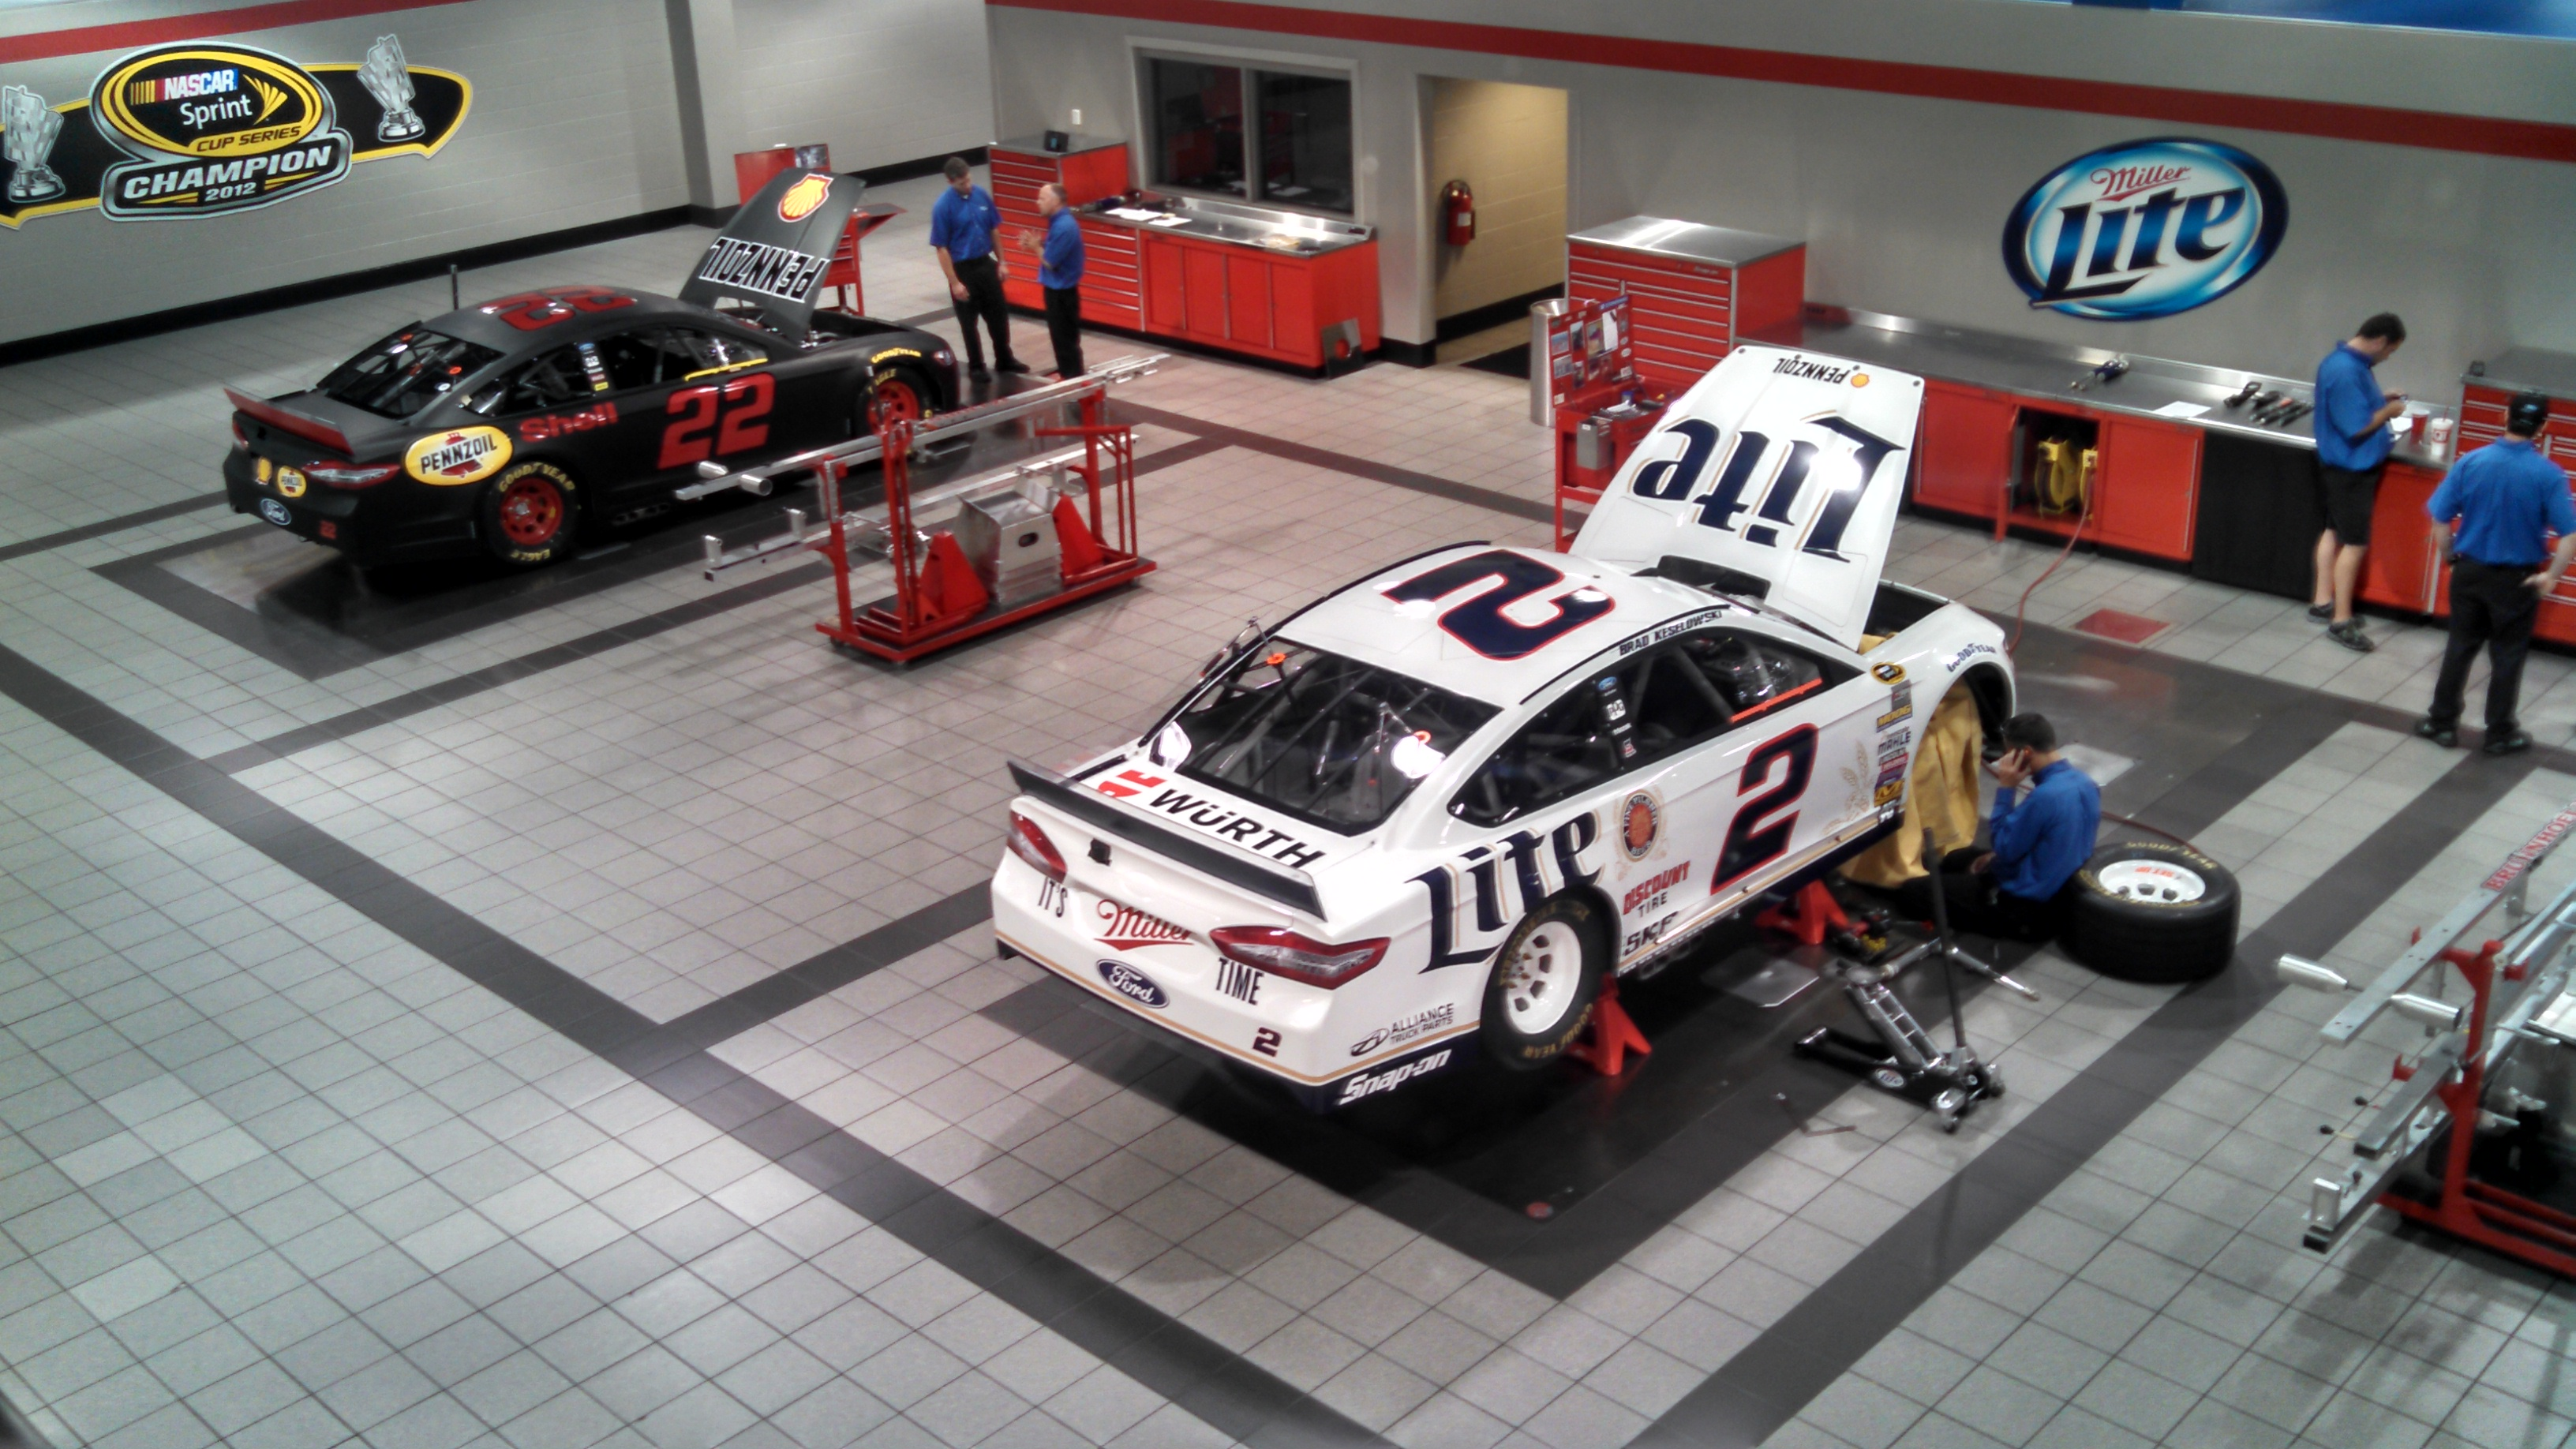 INSIDE PENSKE RACING TODAY.